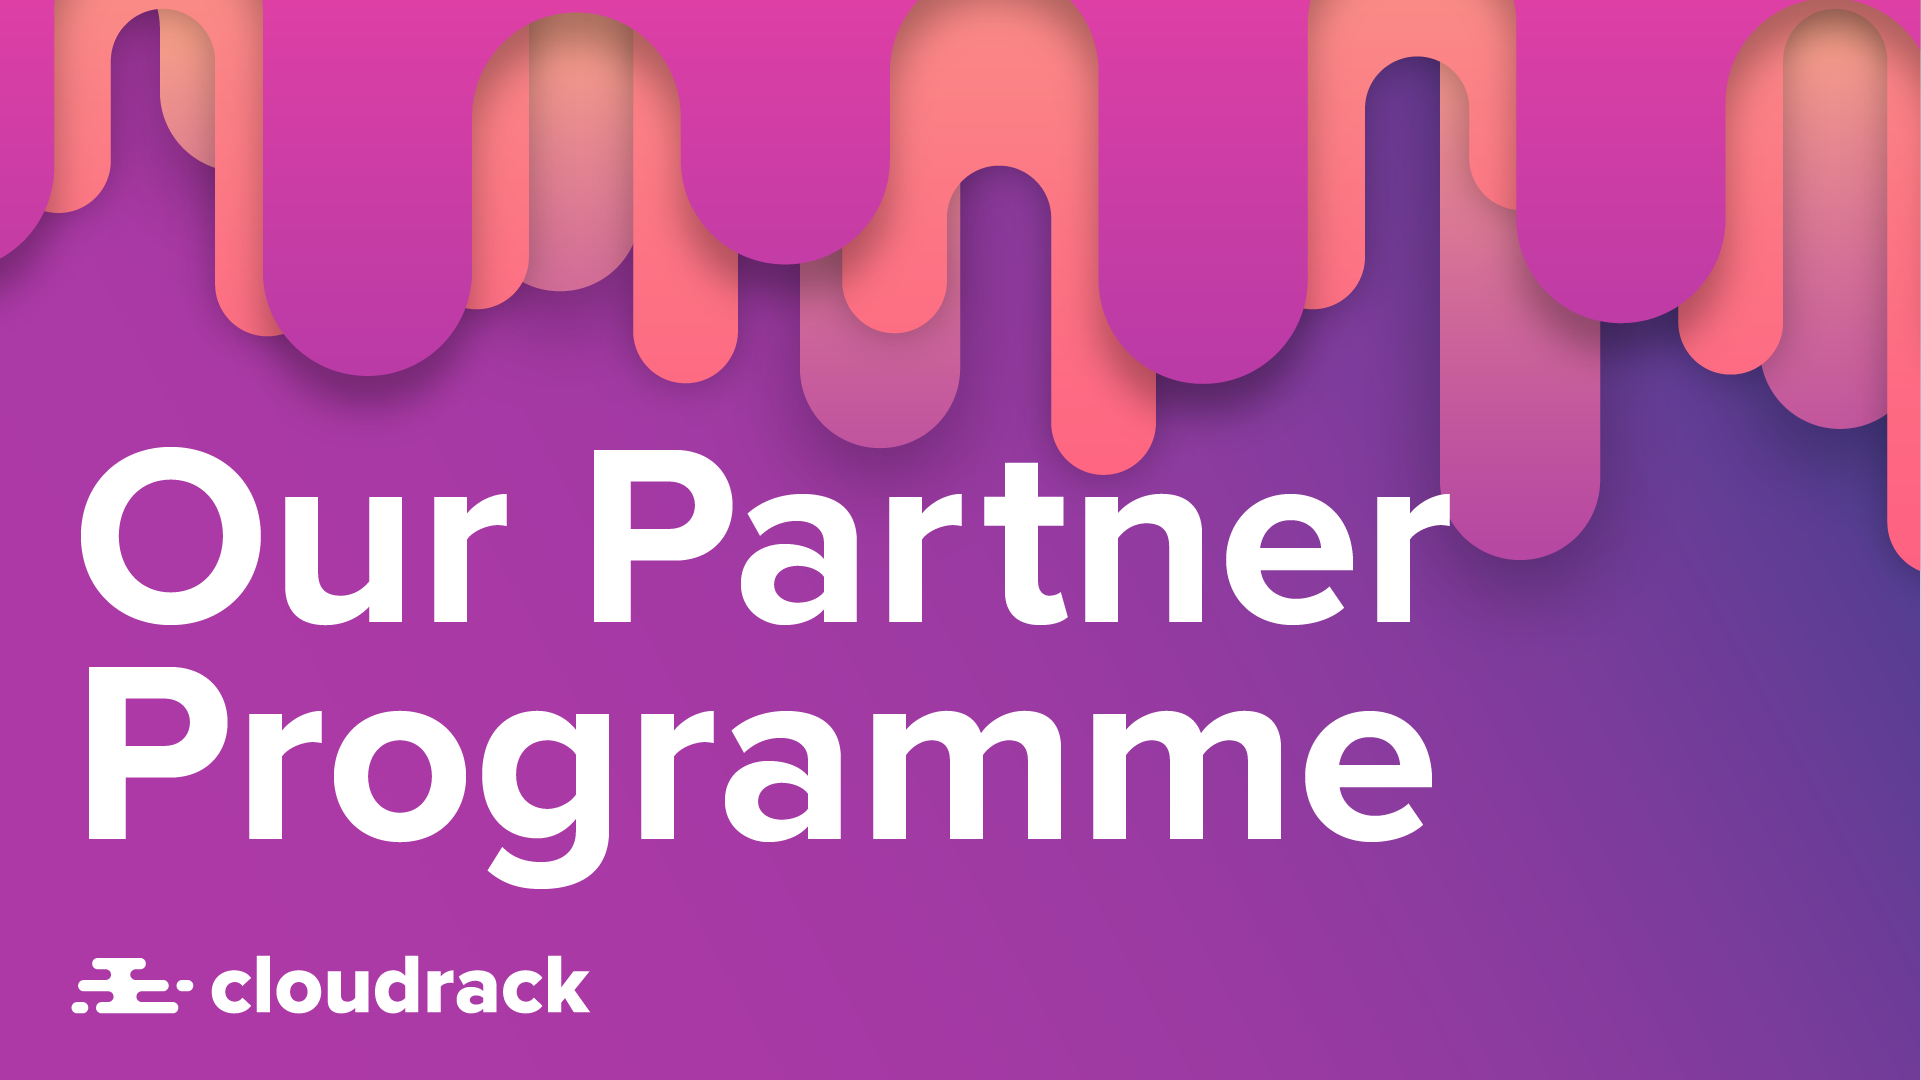 Our Partner Programme